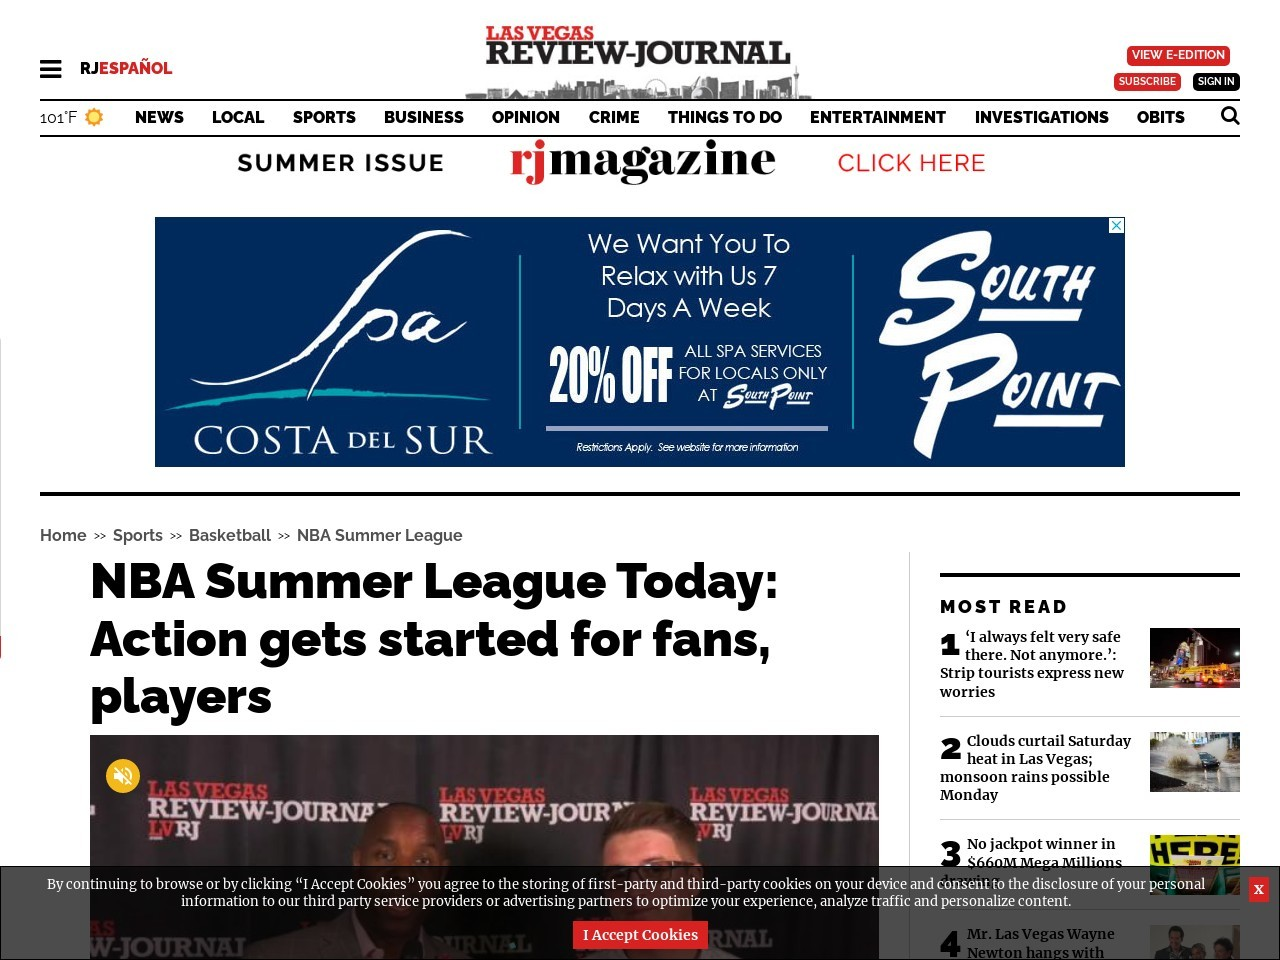 NBA Summer League Today: Action gets started for fans, players